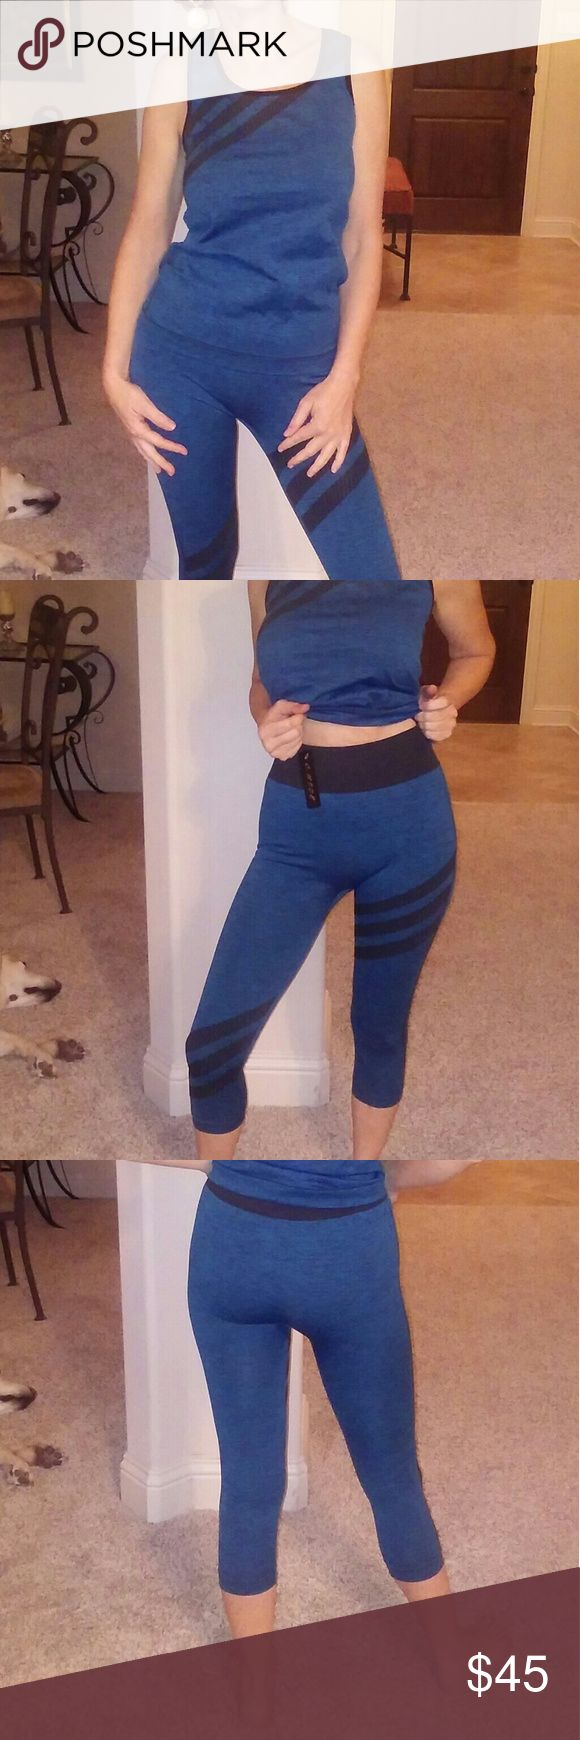 NEW blue black 2 piece tank capri leggings XS-L NEW NWT 2 piece active wear leggings and racer back tank Blue w black trim and accent stripes. Great for the gym. Work out wear. Gorgeous indigo blue. Fab color. ONE SIZE FITS XS-L Other